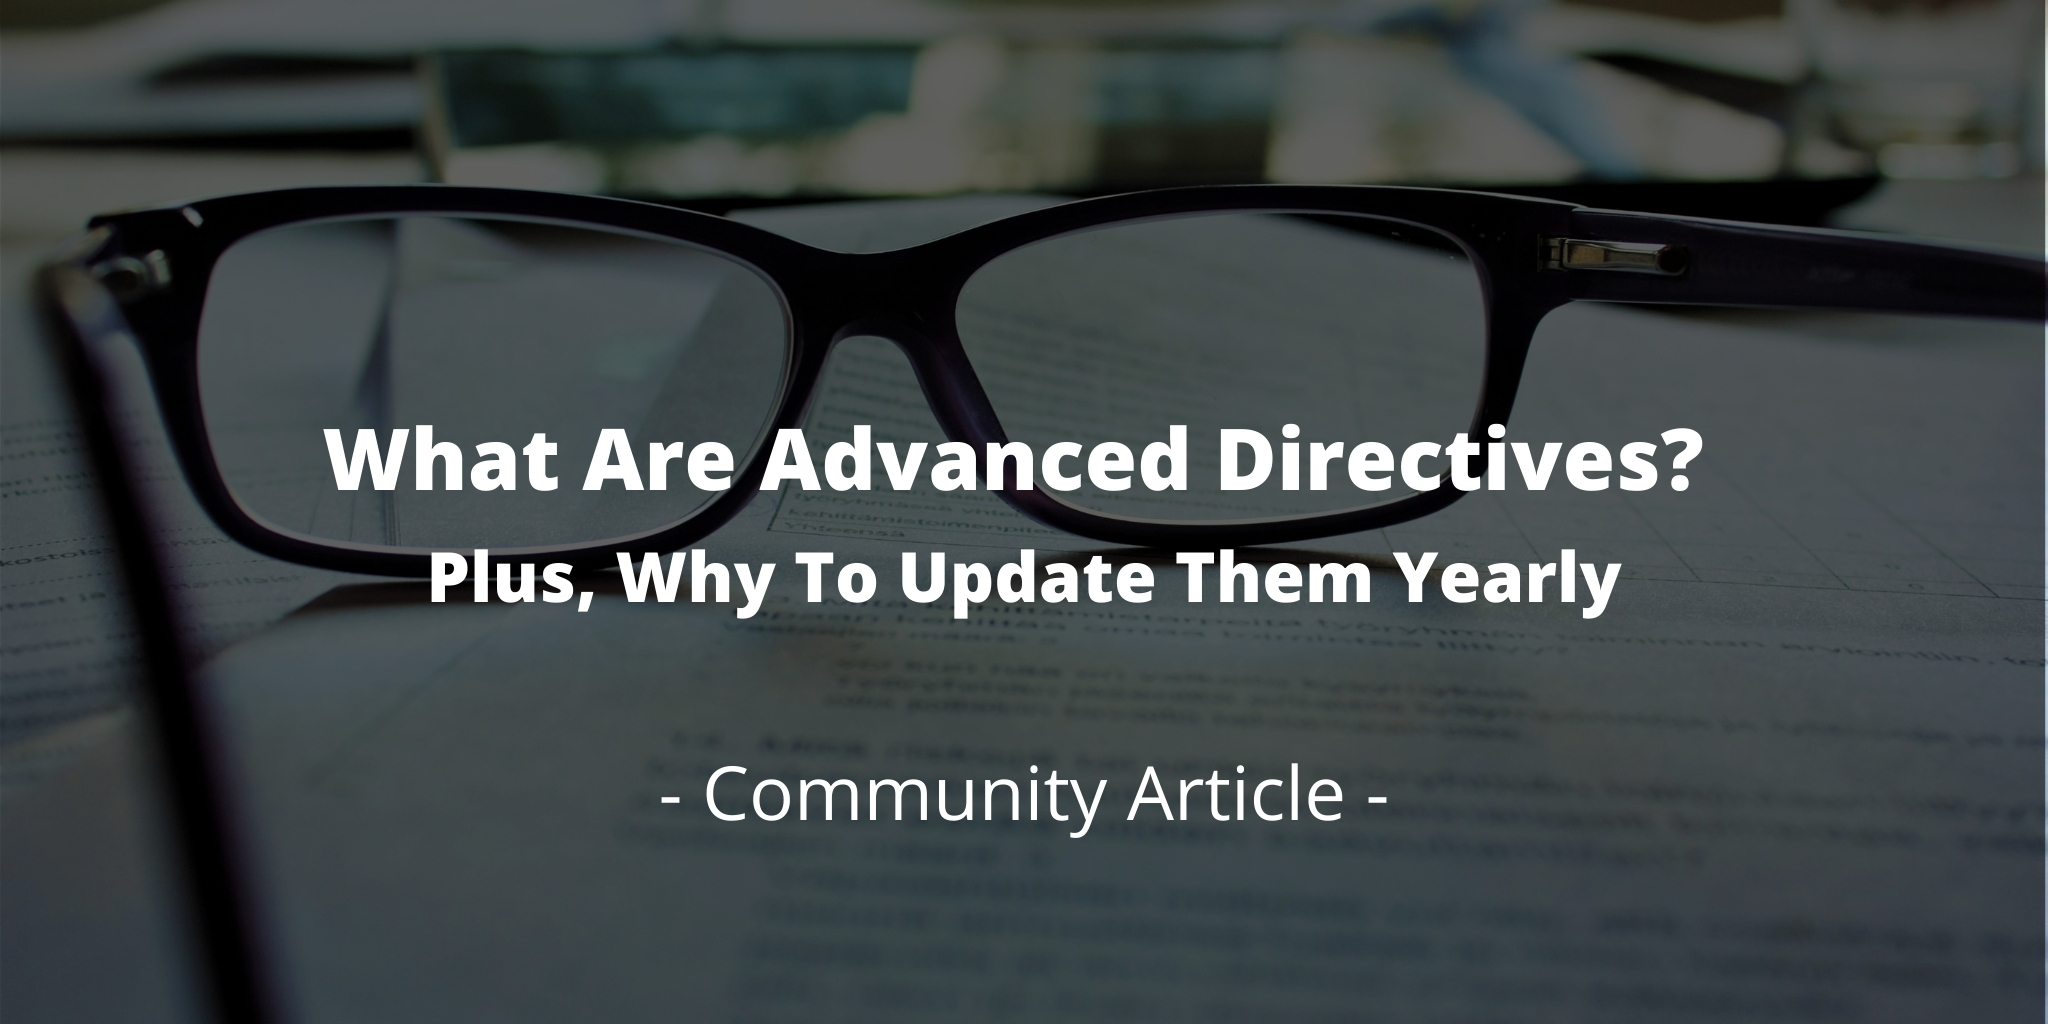 What Are Advanced Directives? Plus, Why To Update Them Yearly